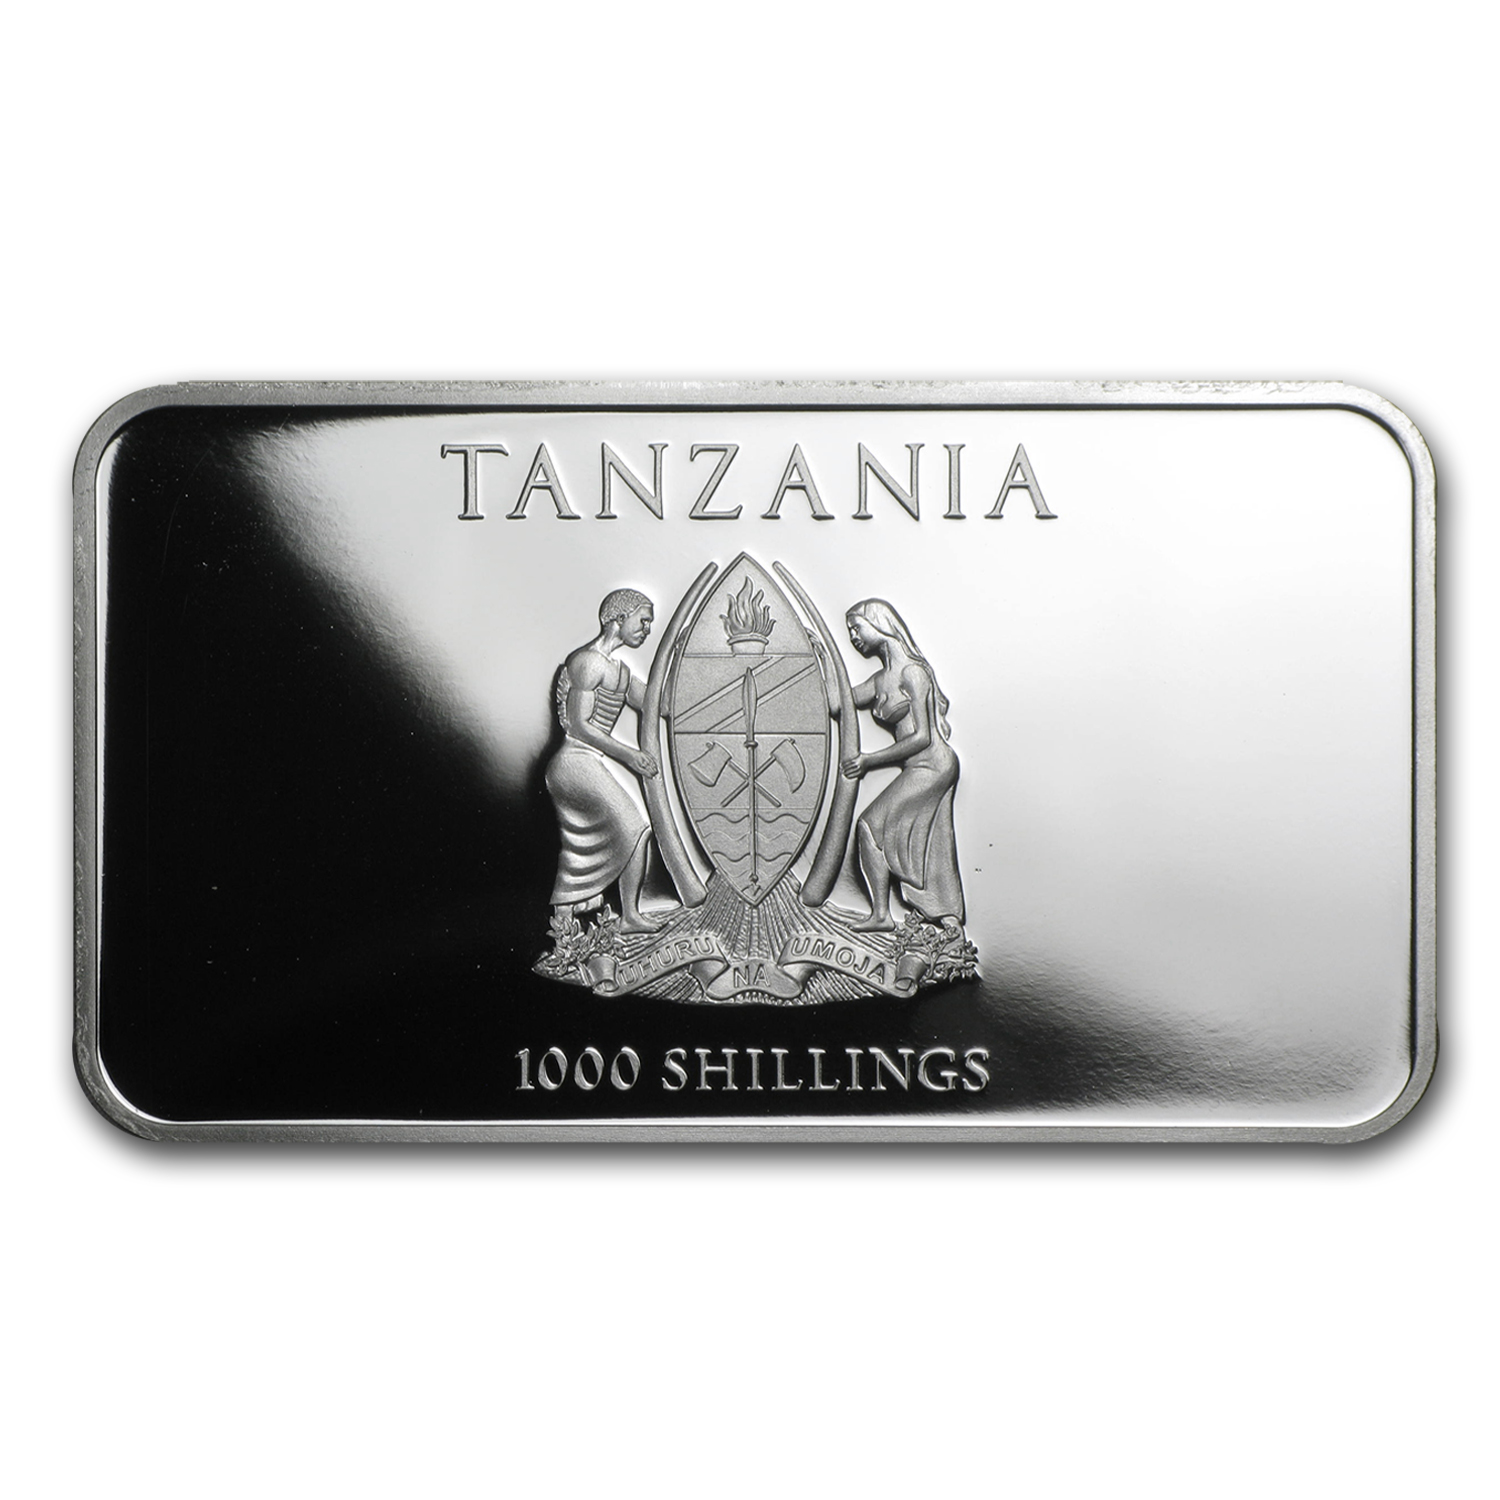 2014 Tanzania 1 oz Silver The Three Wise Monkeys Proof